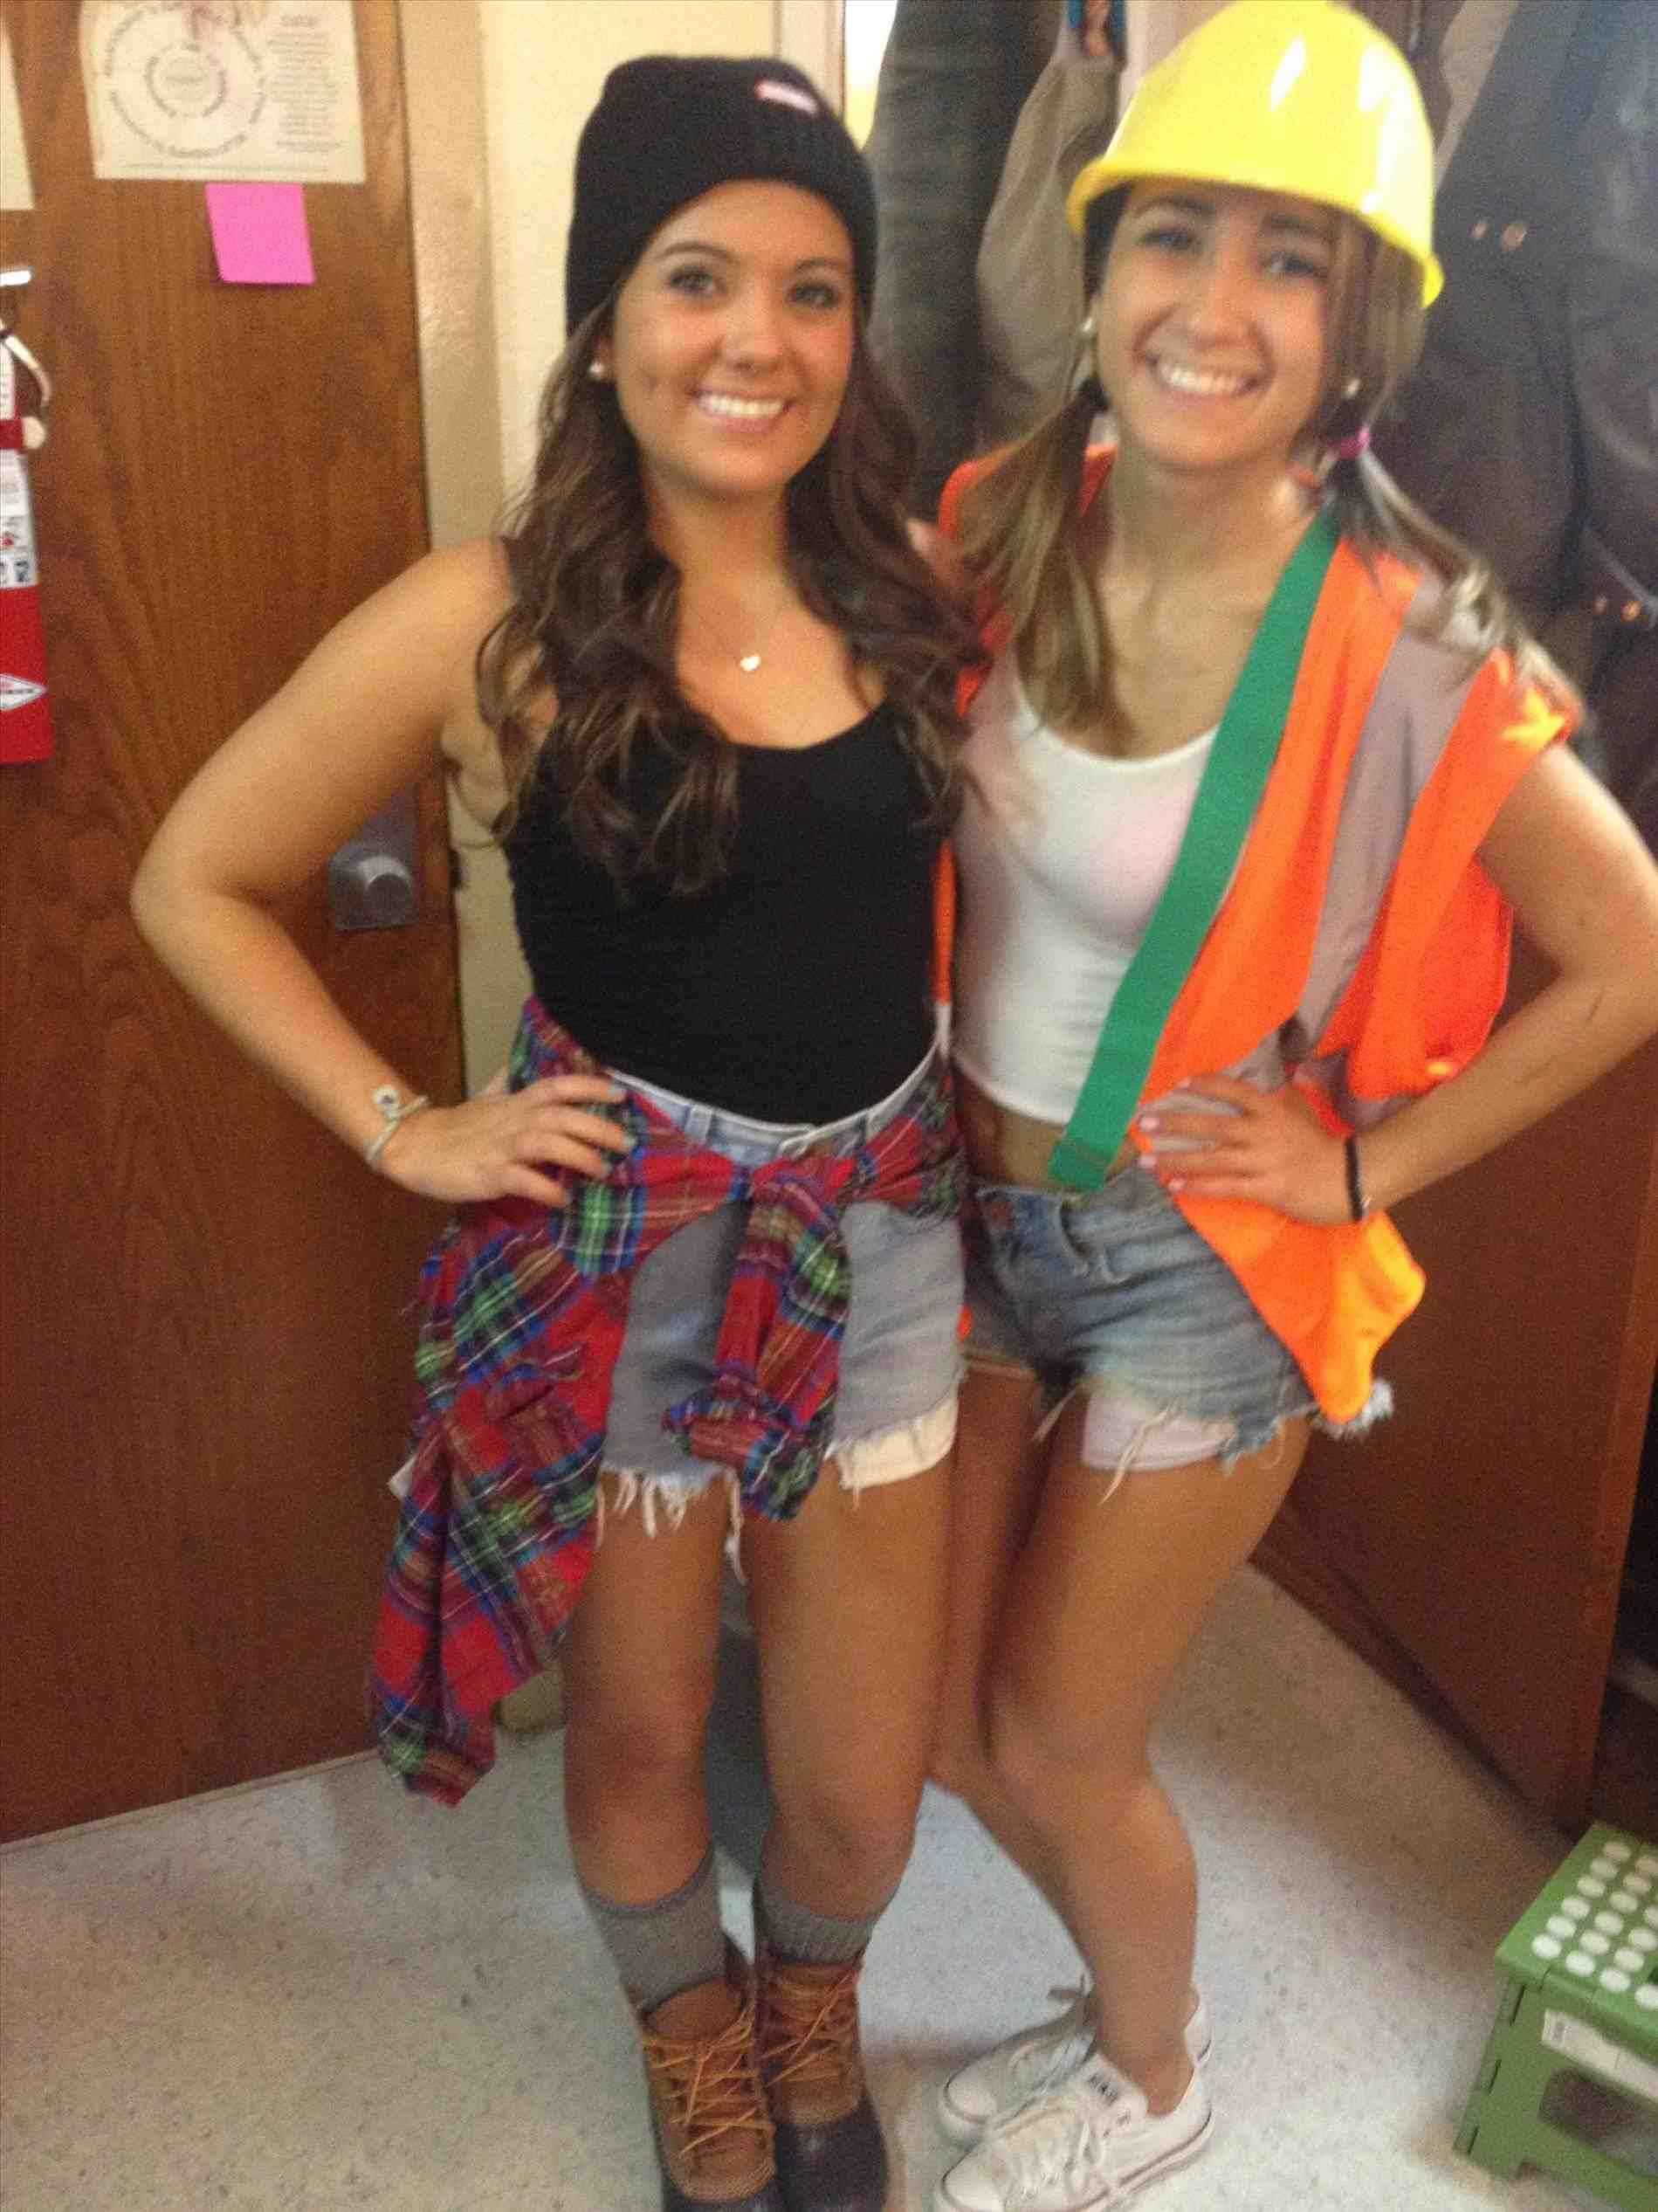 group halloween costumes for college girls